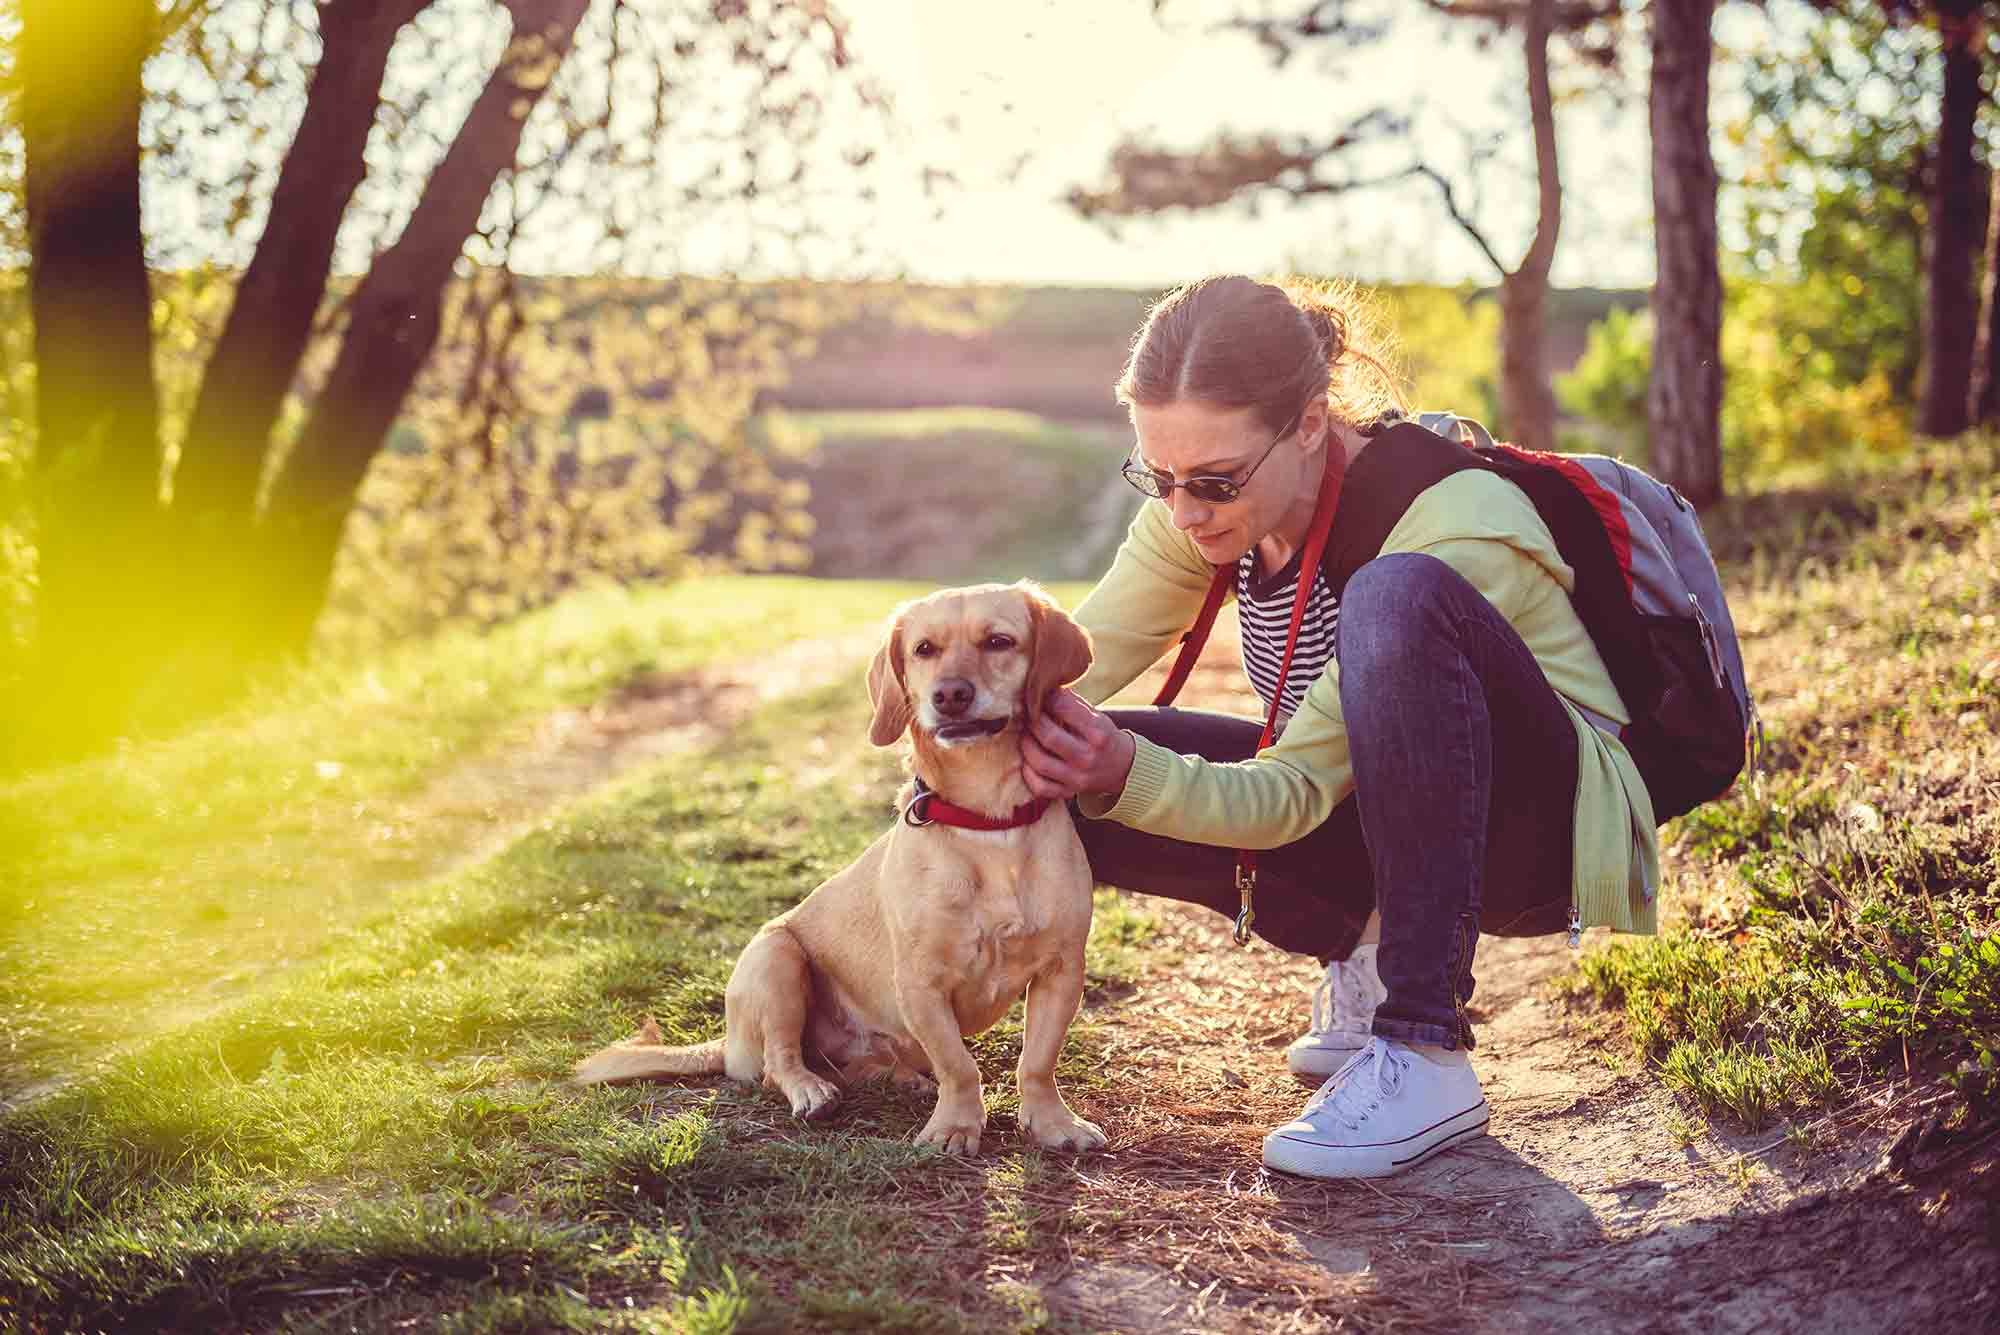 Lyme disease in pets is a threat to pet health